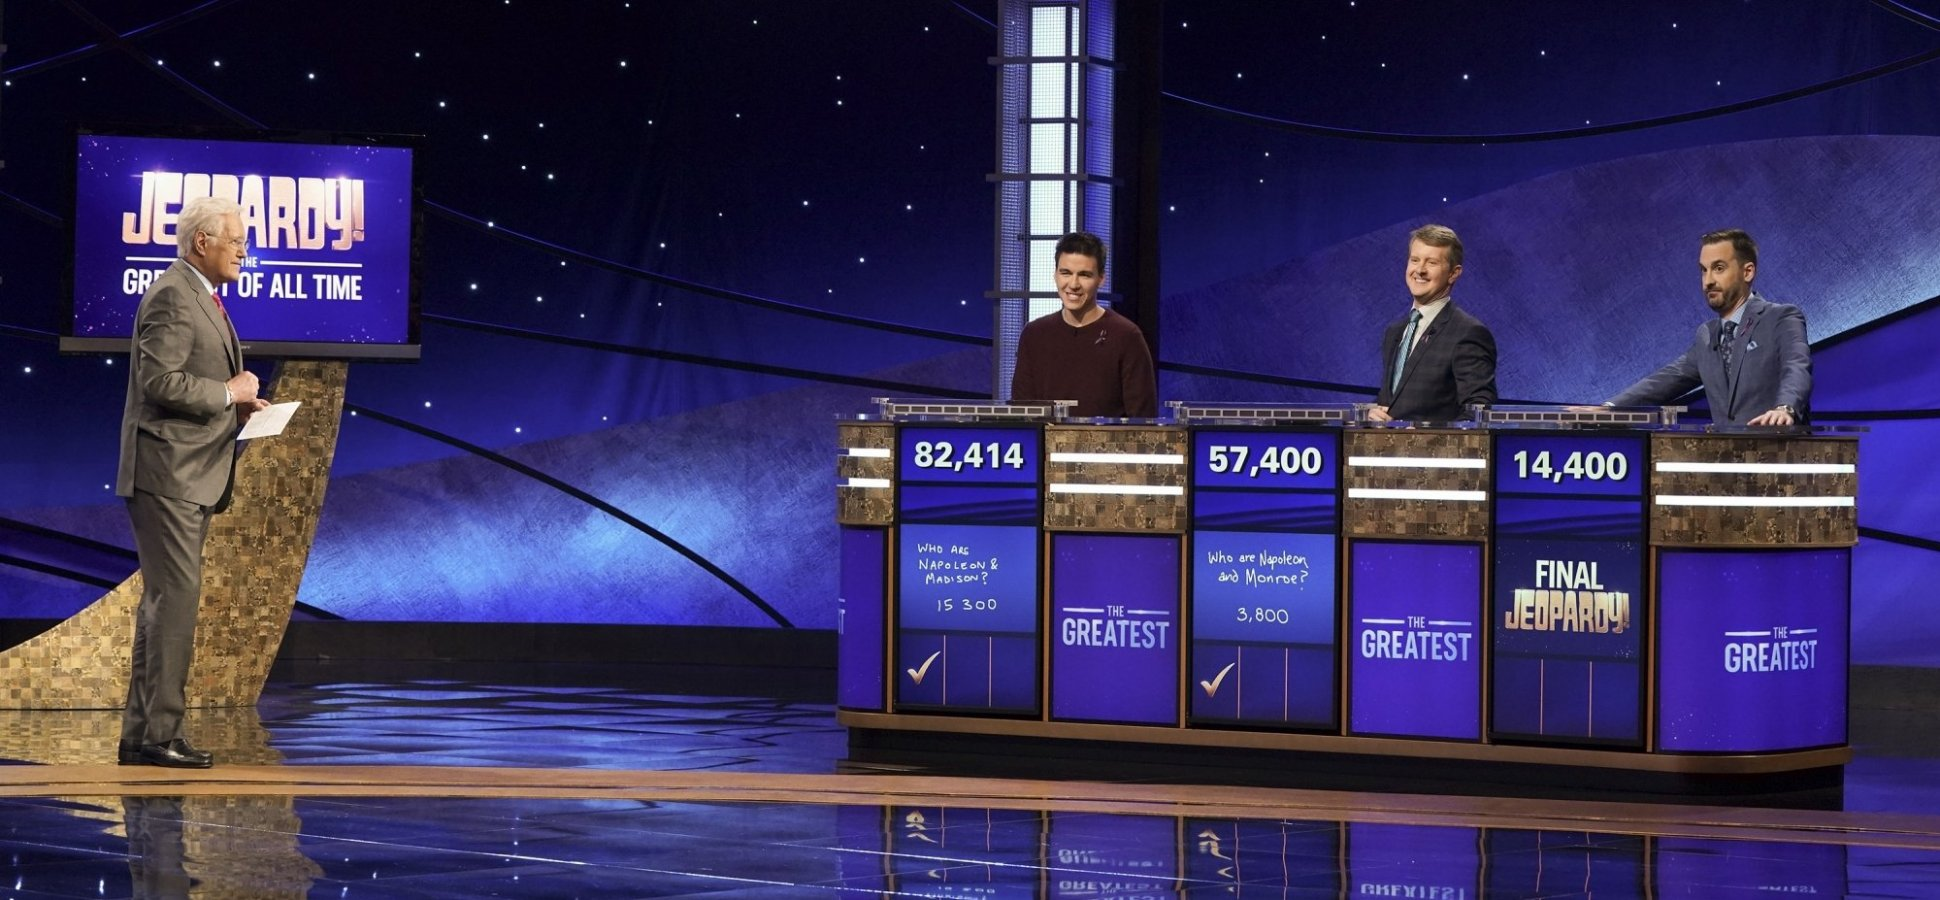 The 'Jeopardy! Greatest of All Time' Tournament Reveals a Brutal Truth About Life That Few People Are Willing to Admit